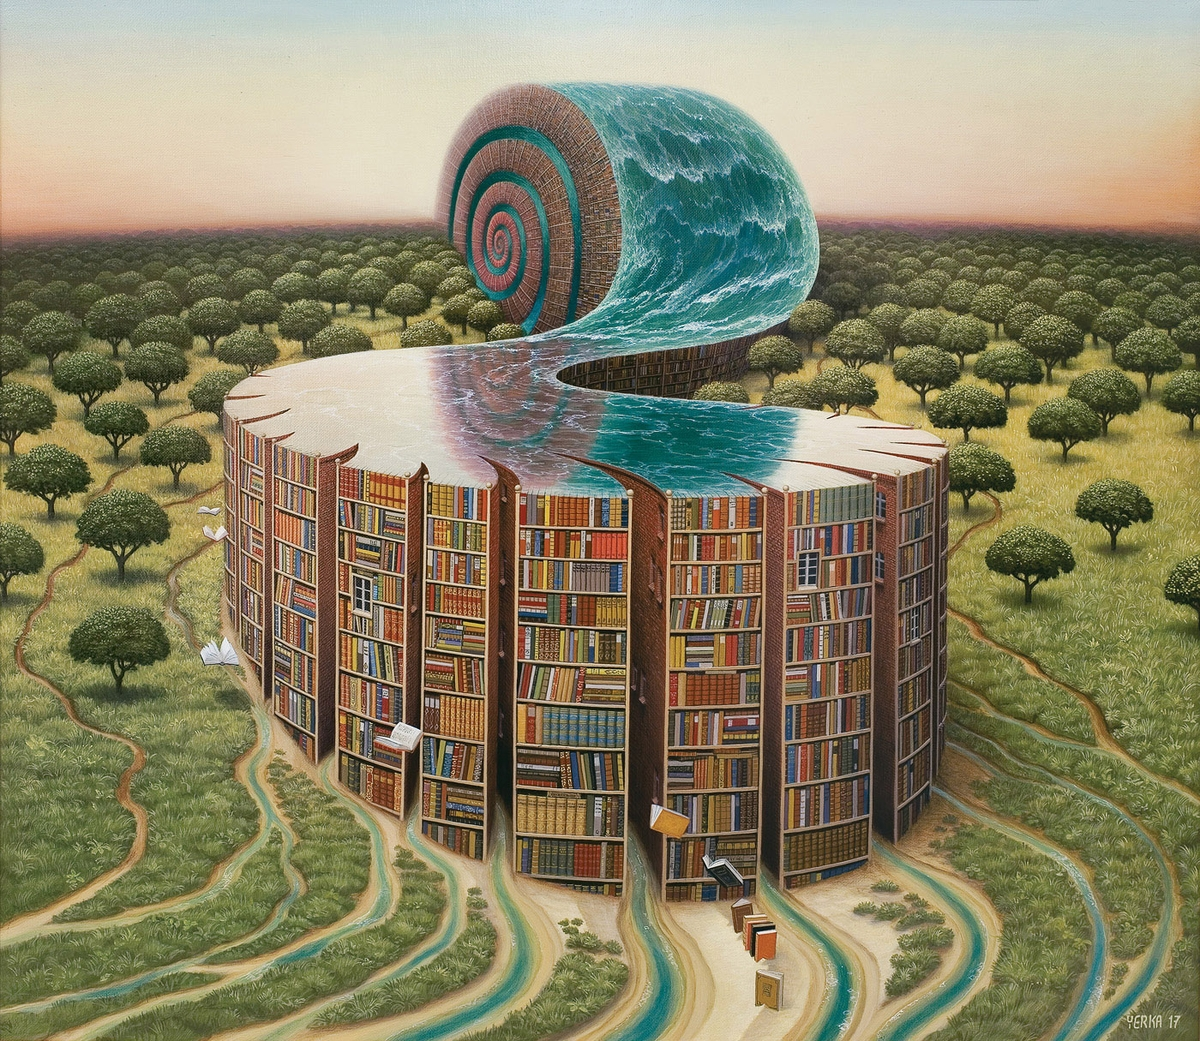 03-Library-Ammonite-Jacek-Yerka-Surrealism-in-Dreamlike-Oil-Paintings-www-designstack-co